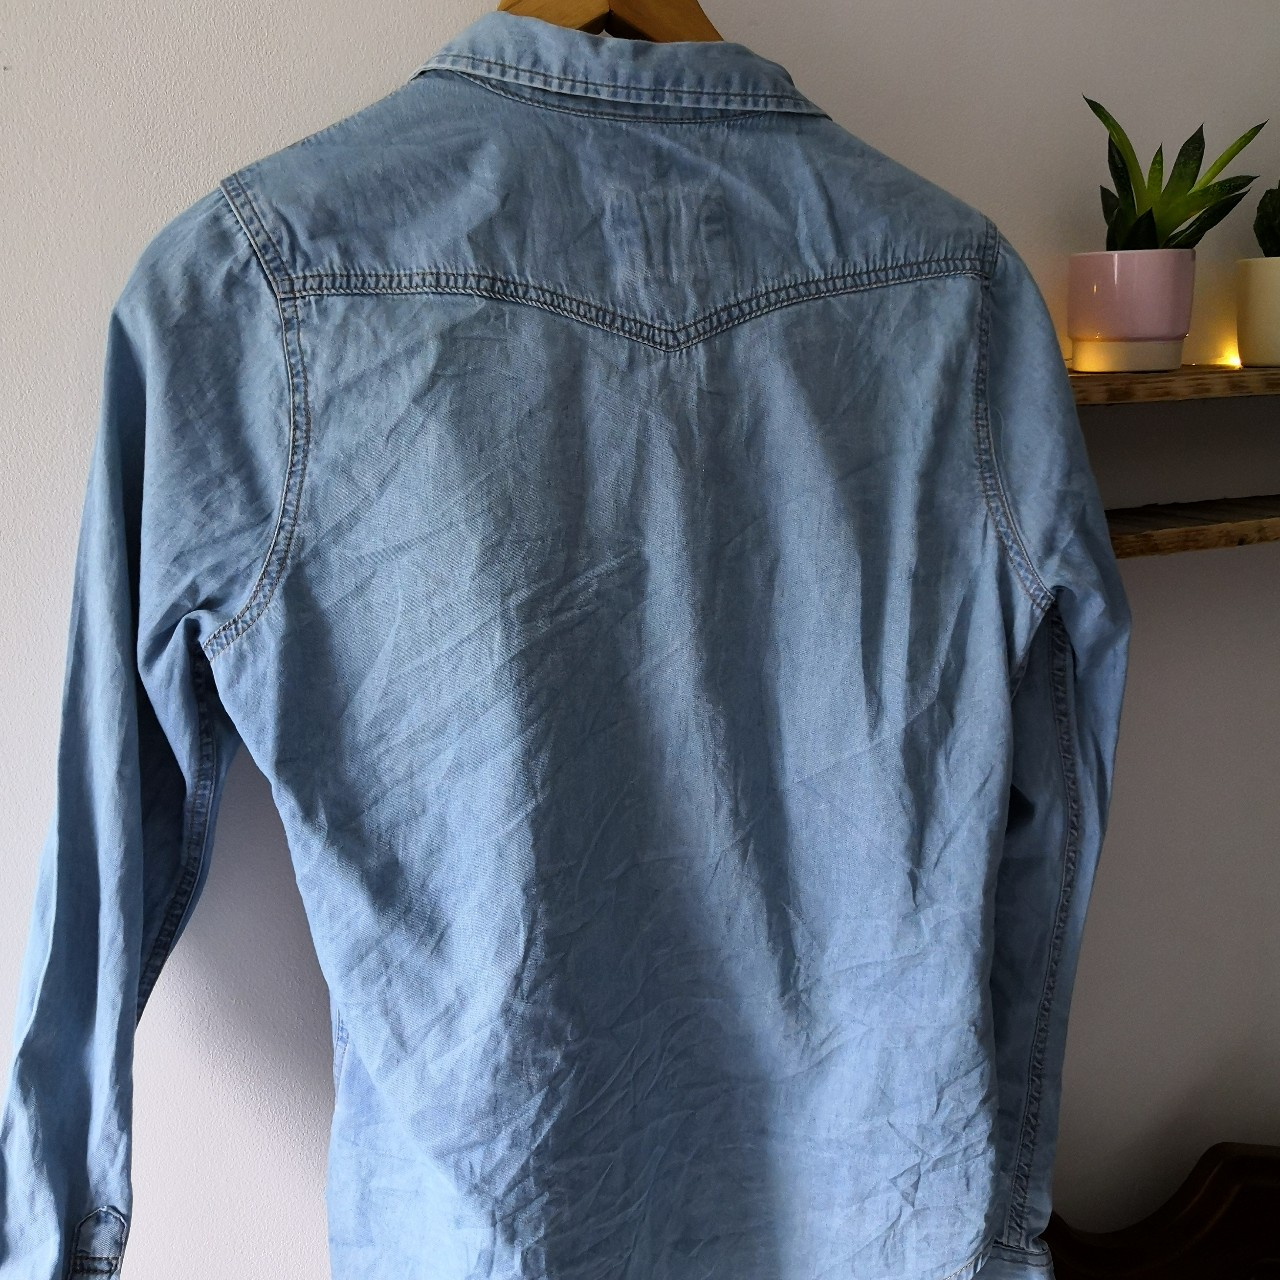 Zara Boys Denim Shirt Size 13 14 Boys (But Would Fit Depop